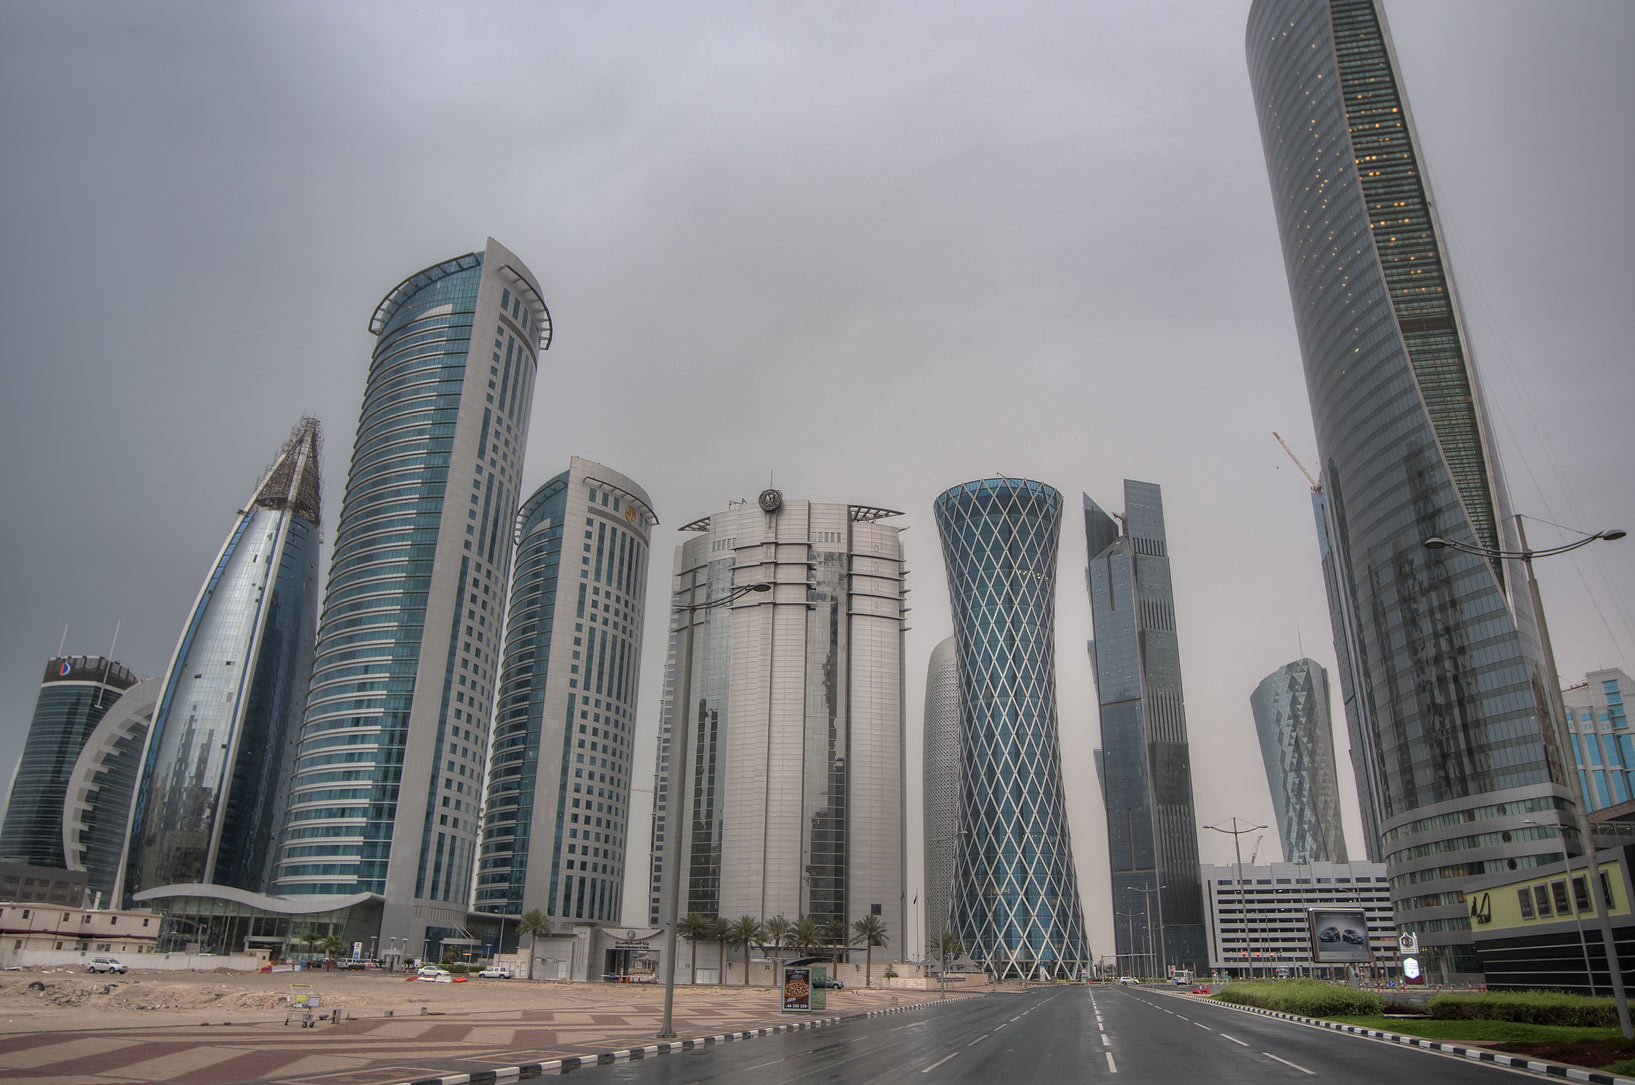 West Bay from Al Wahda St. near City Center Mall at rain. Doha, Qatar